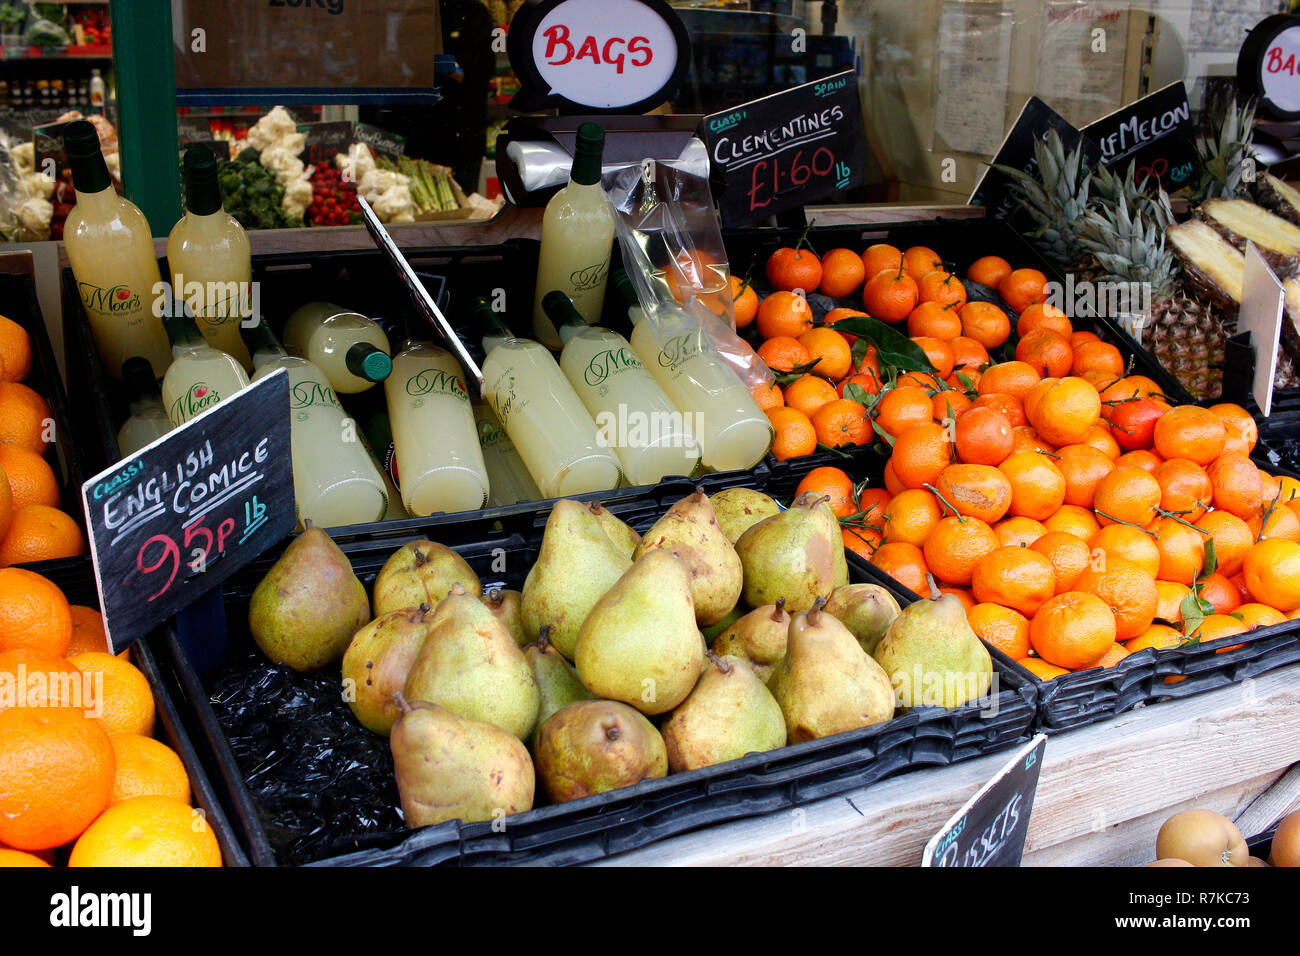 greengrocer shop in deal town kent county uk december 2018 Stock